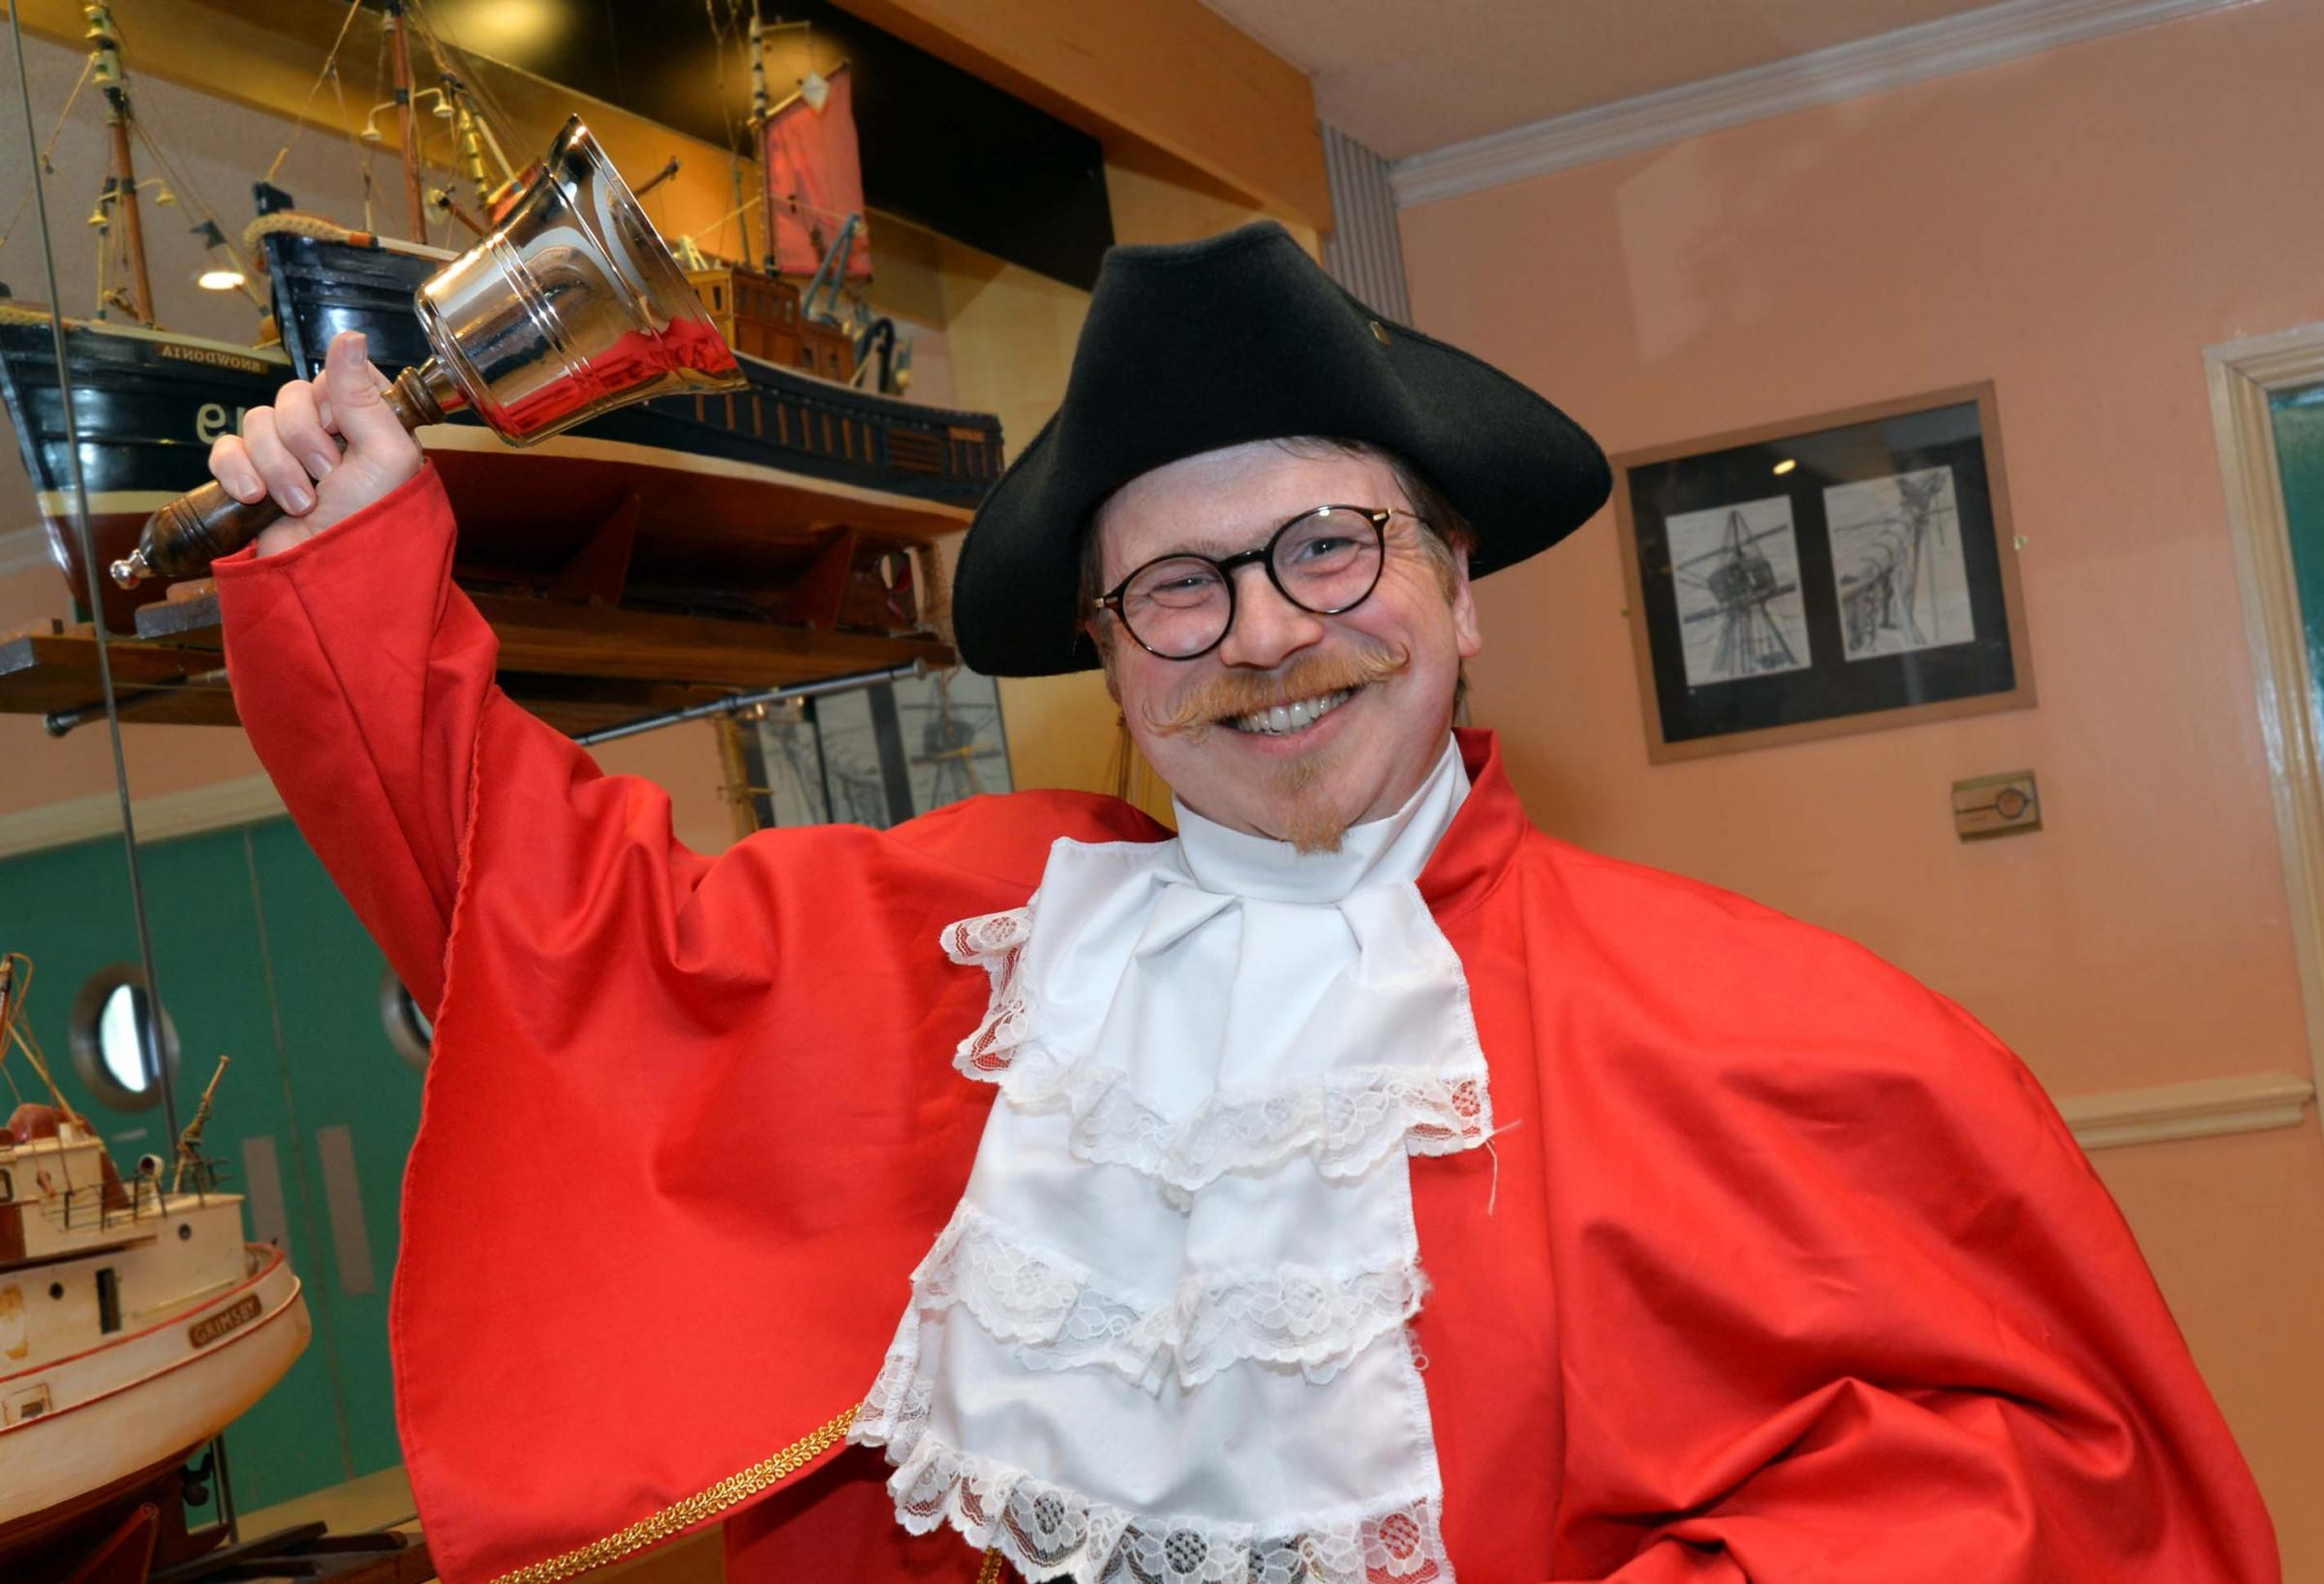 Chris Baglin is the only town crier in Flintshire